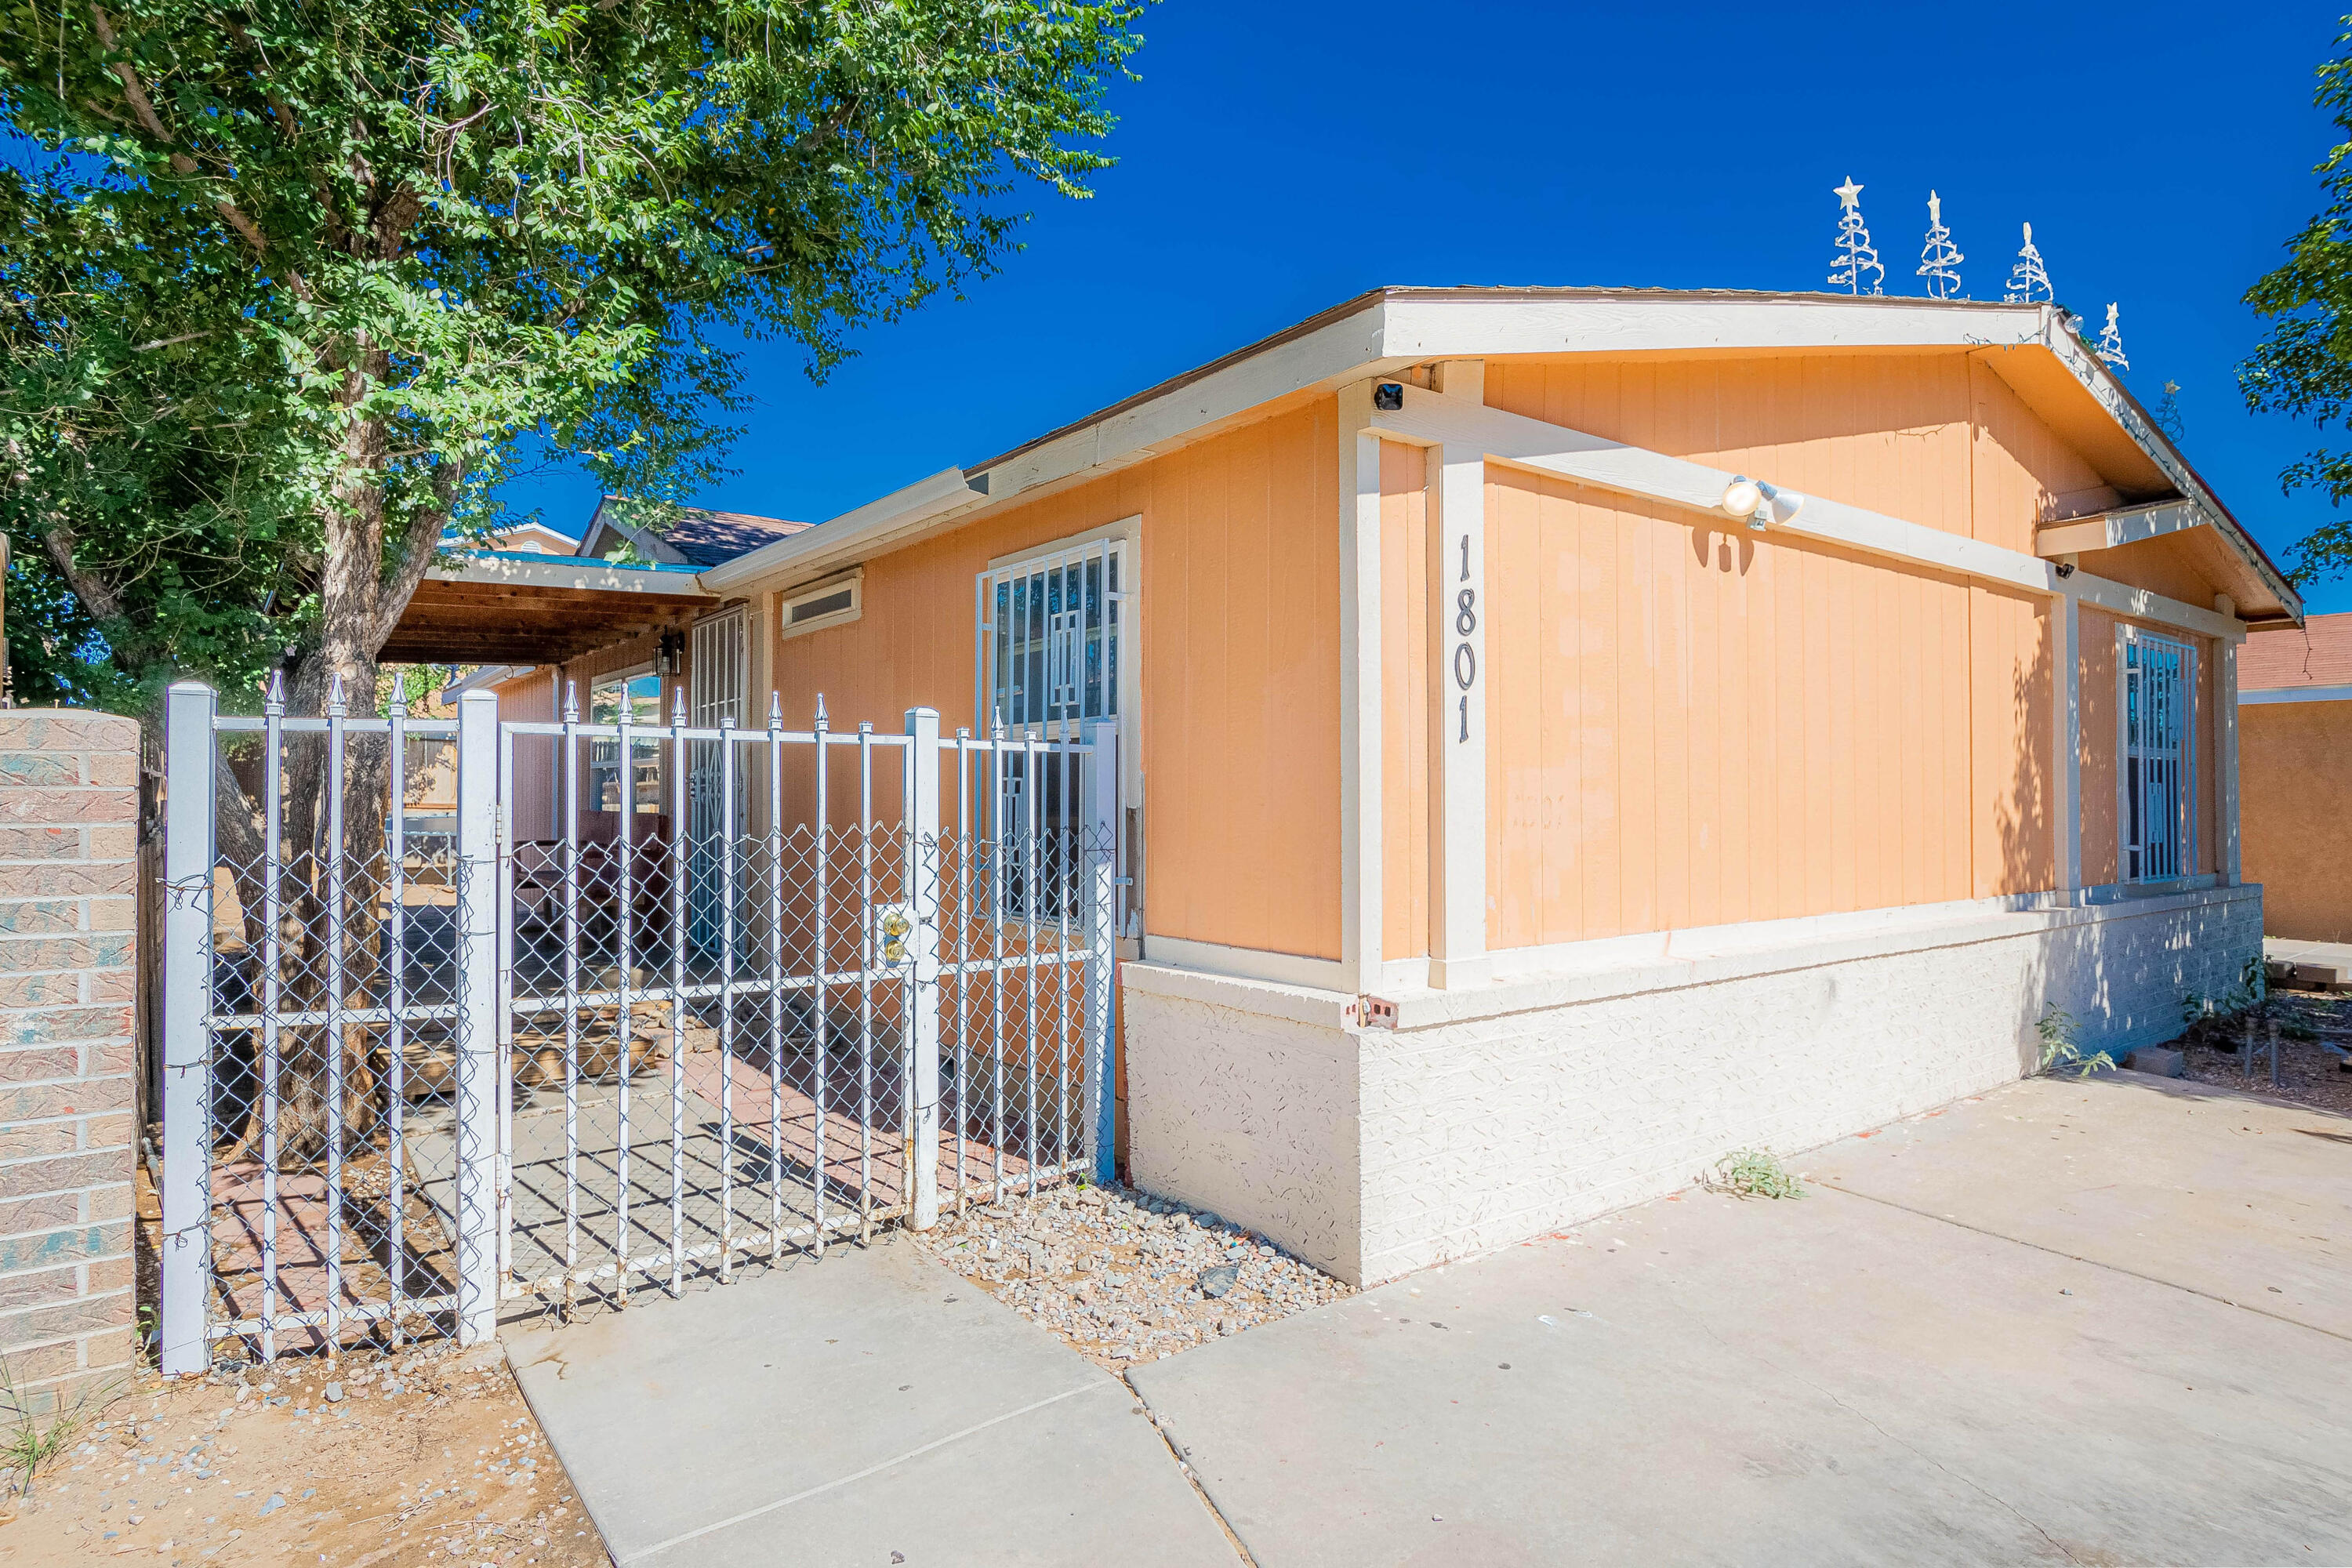 Come check out this 3 bedroom, 2 bathroom manufactured home on permanent foundation. Motivated seller, don't miss out on this perfect starter home!